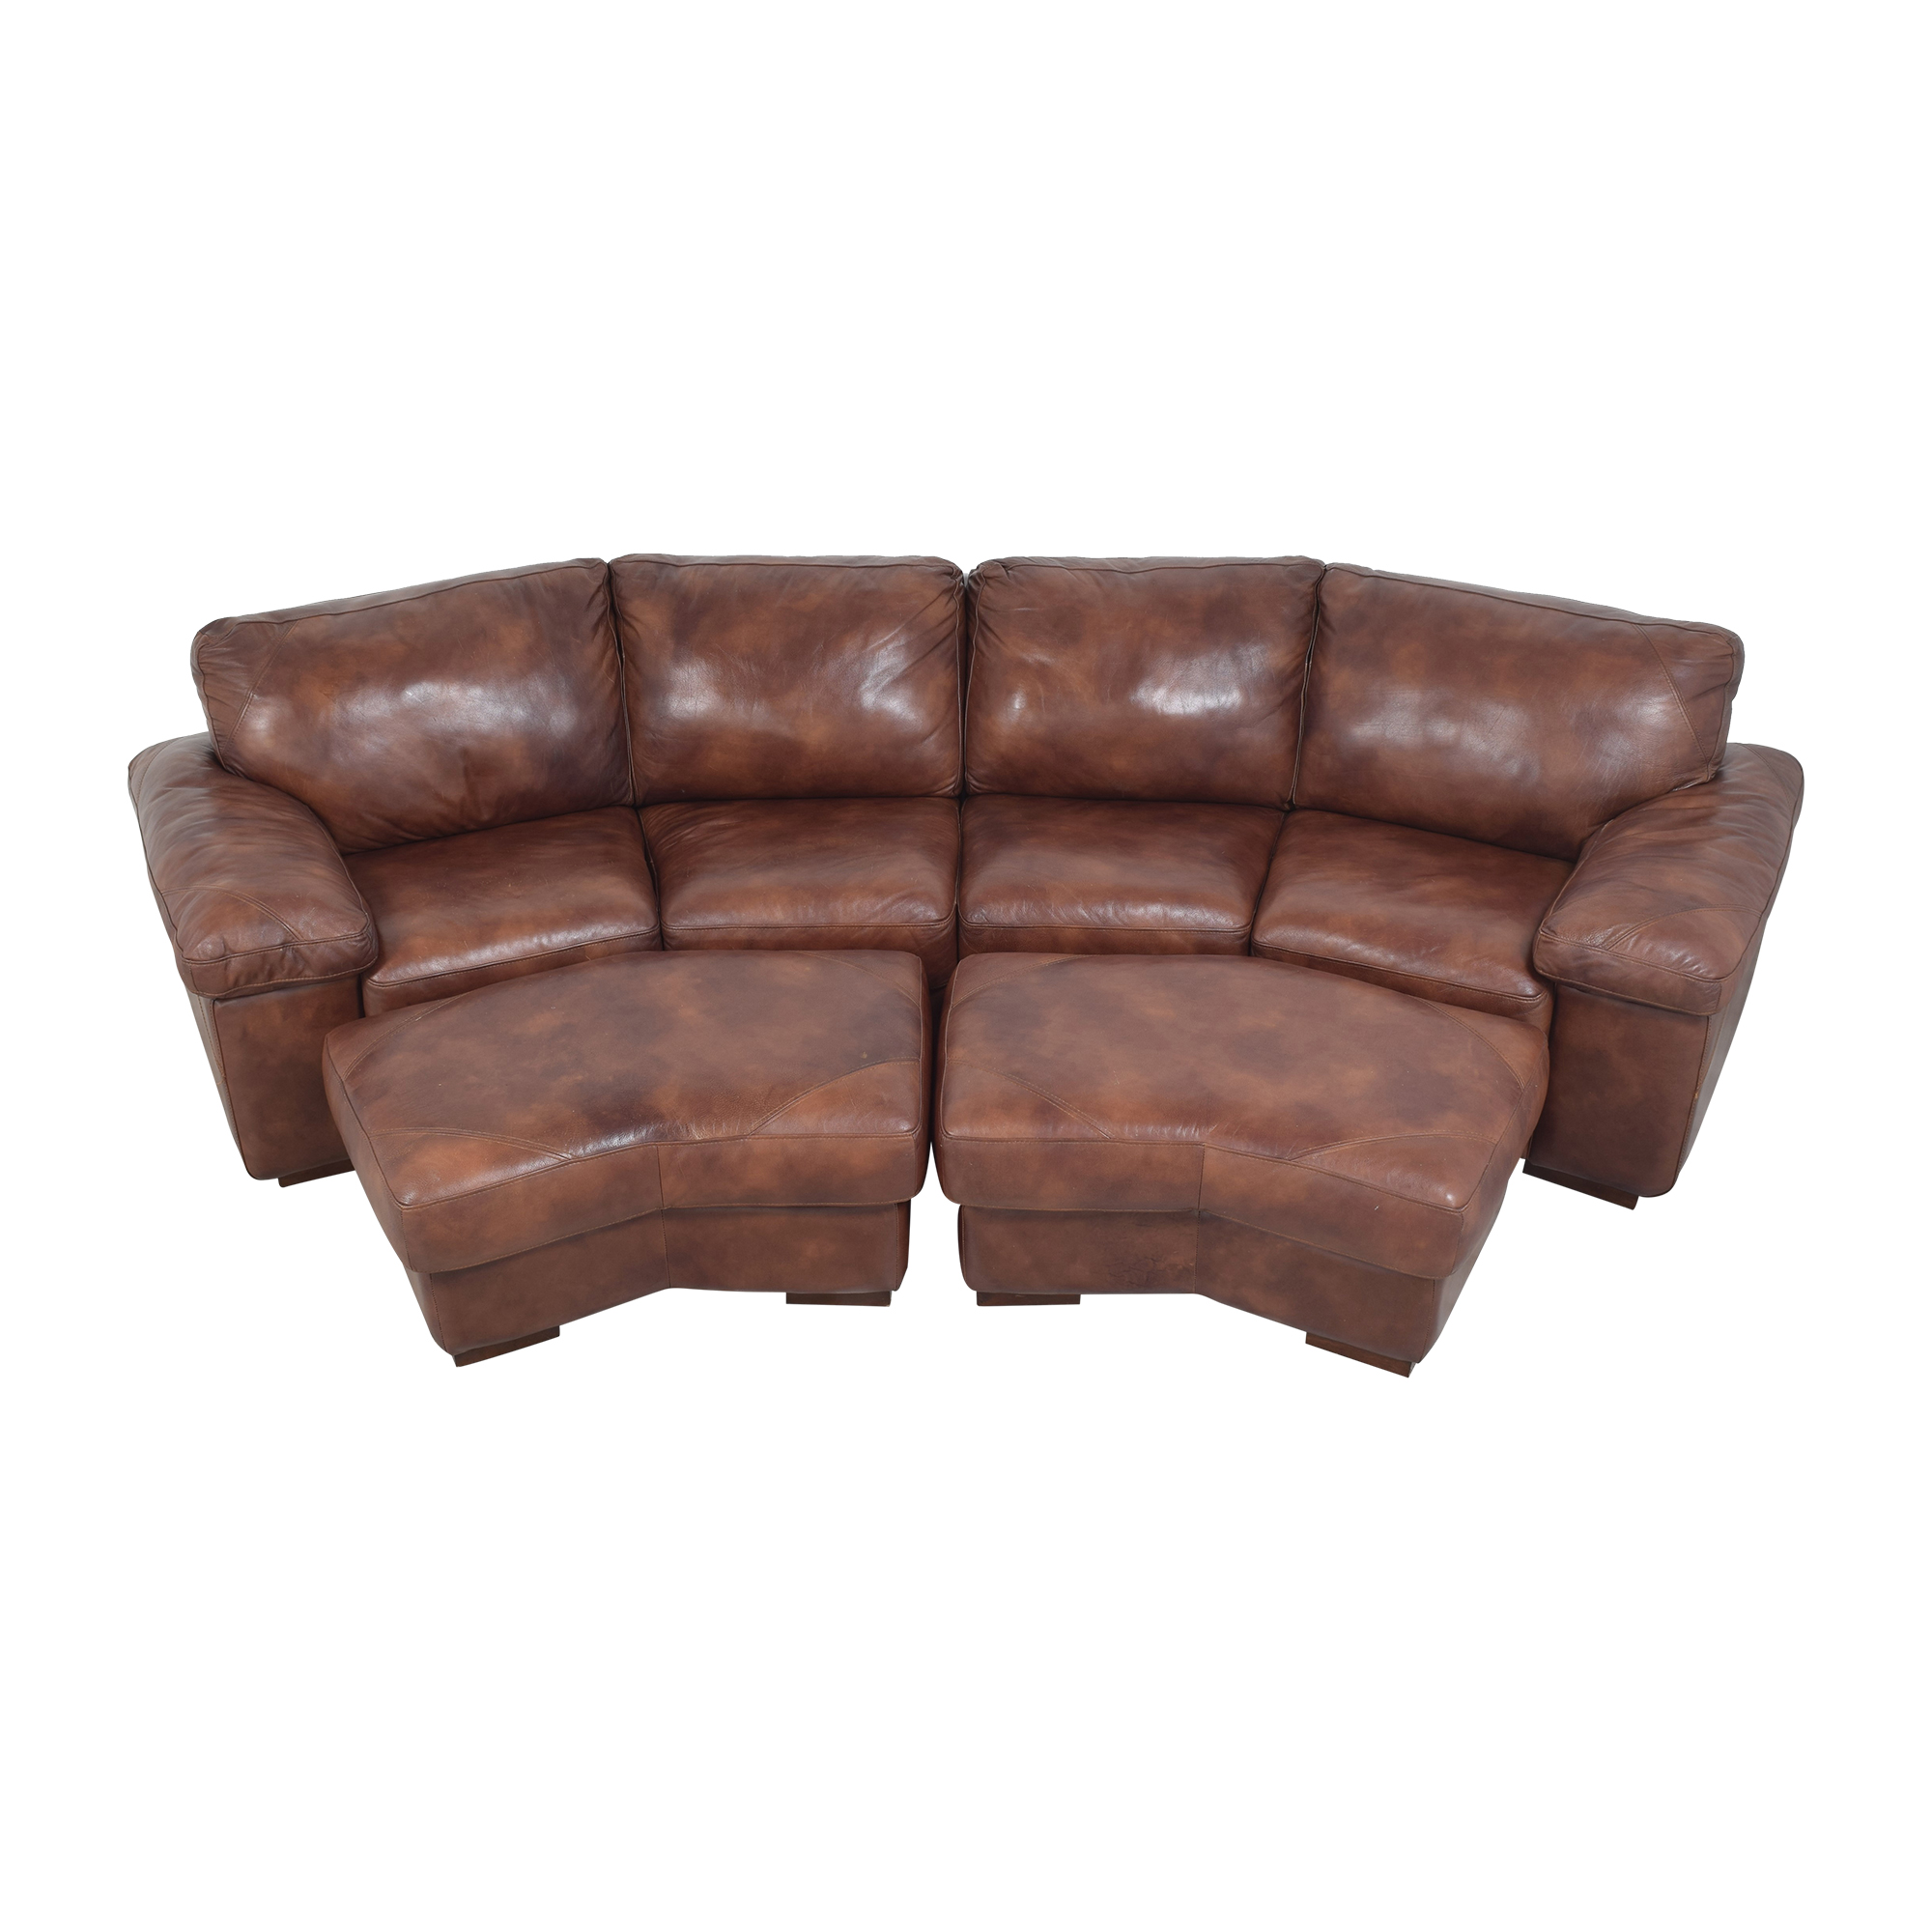 Bassett Two Piece Sectional Sofa with Ottomans / Sectionals